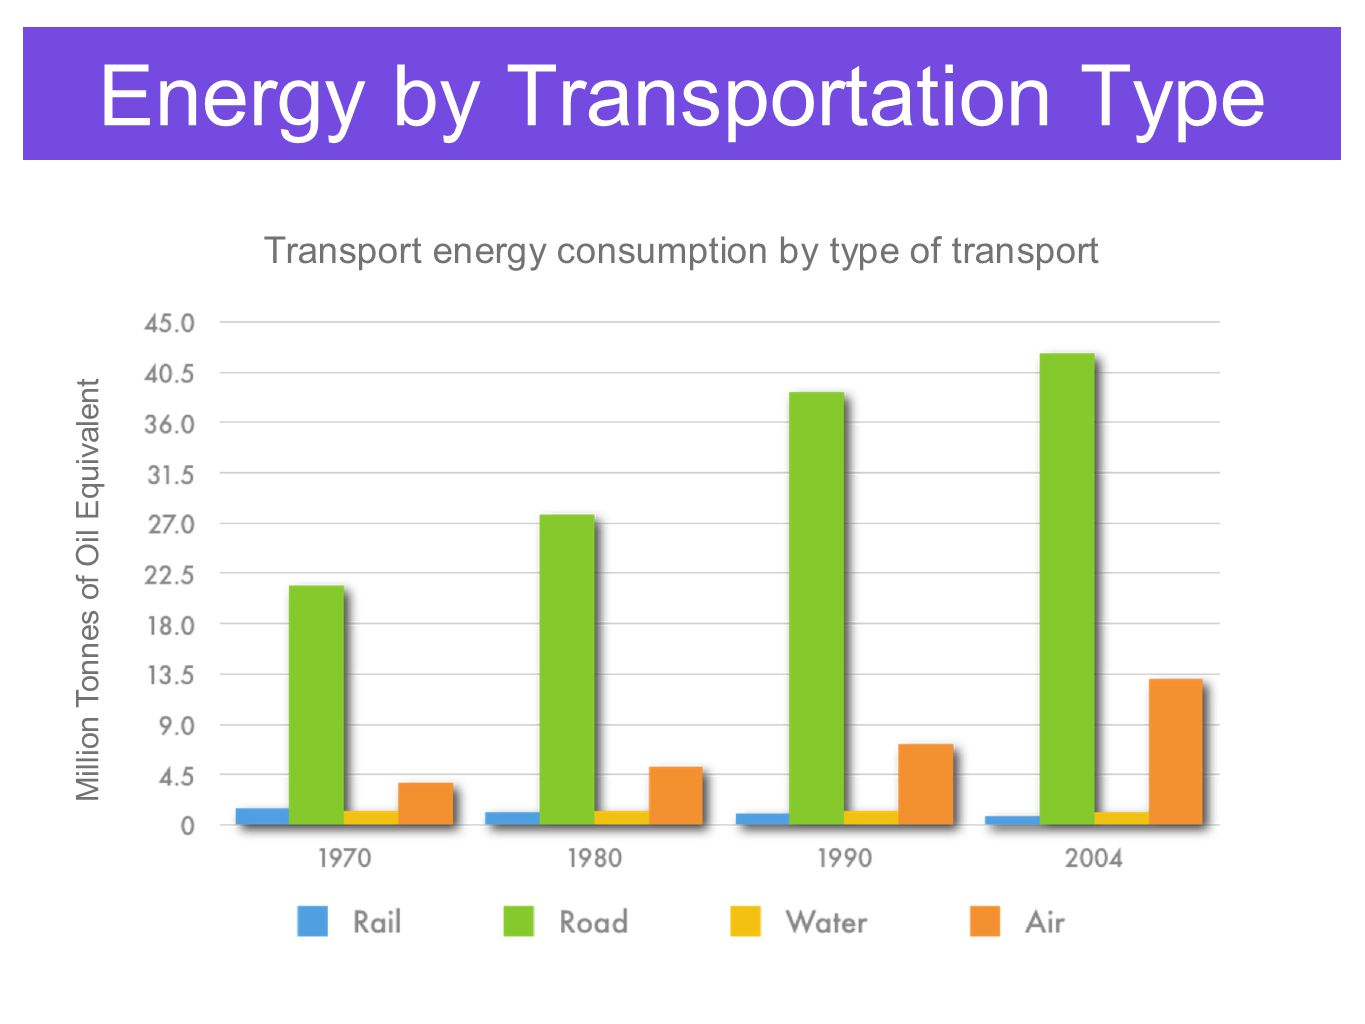 Energy by Transportation Type Million Tonnes of Oil Equivalent Transport energy consumption by type of transport